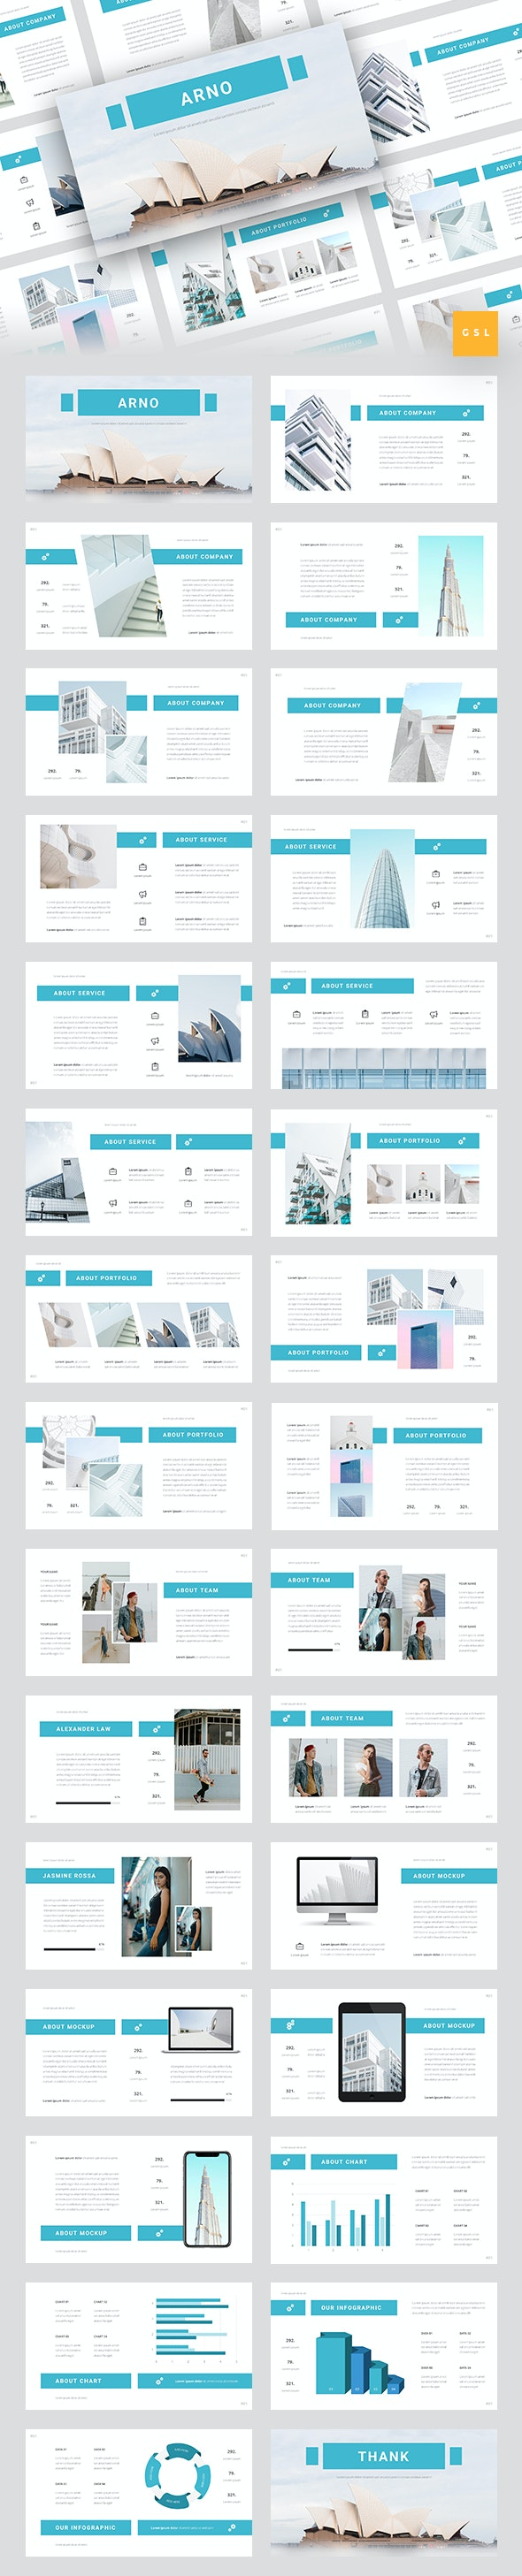 Arno - Architecture Google Slides Template - Google Slides Presentation Templates